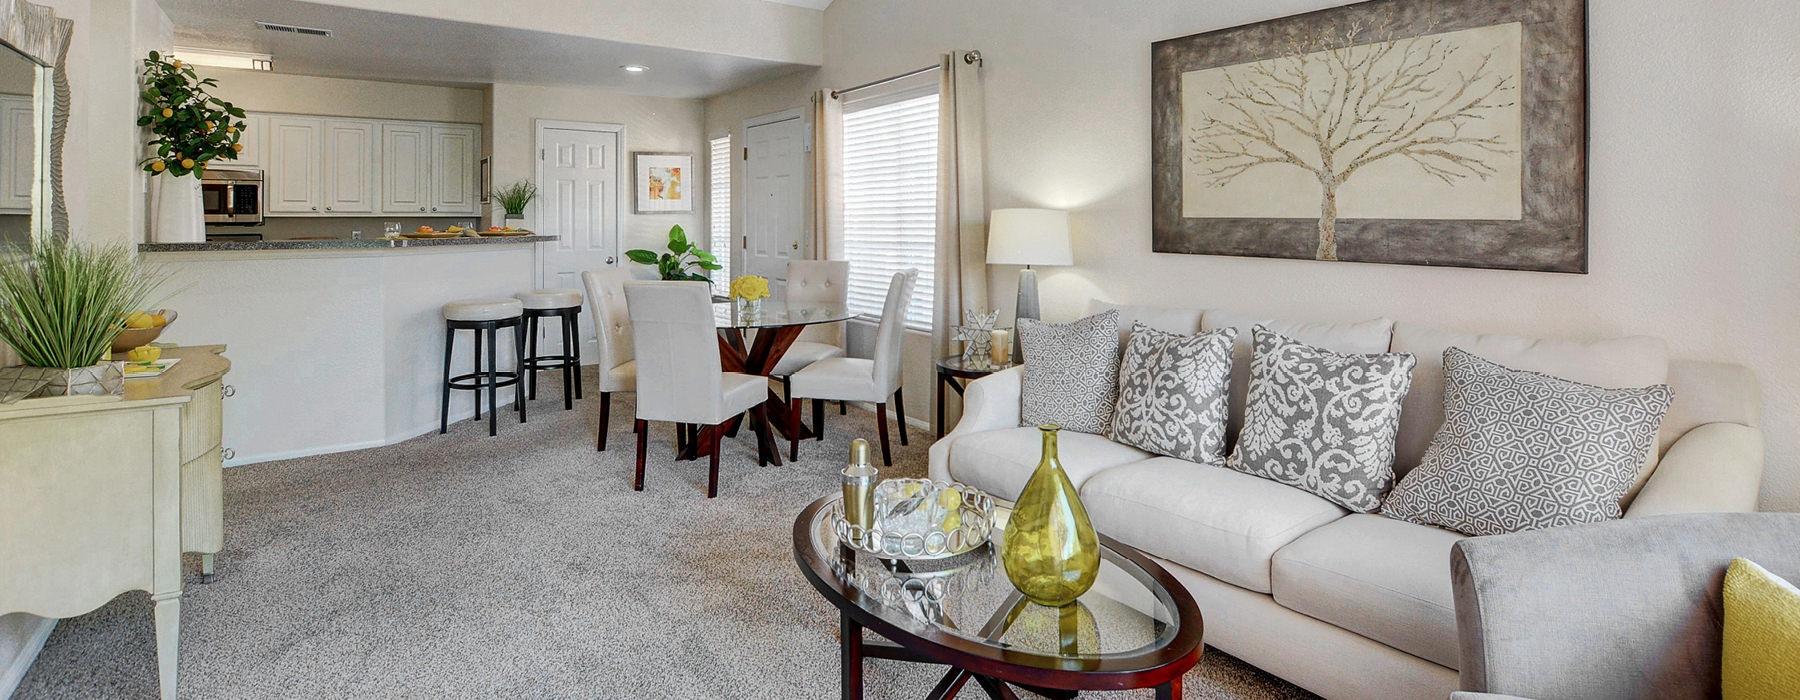 open layout living room, dining area and kitchen counter stool area